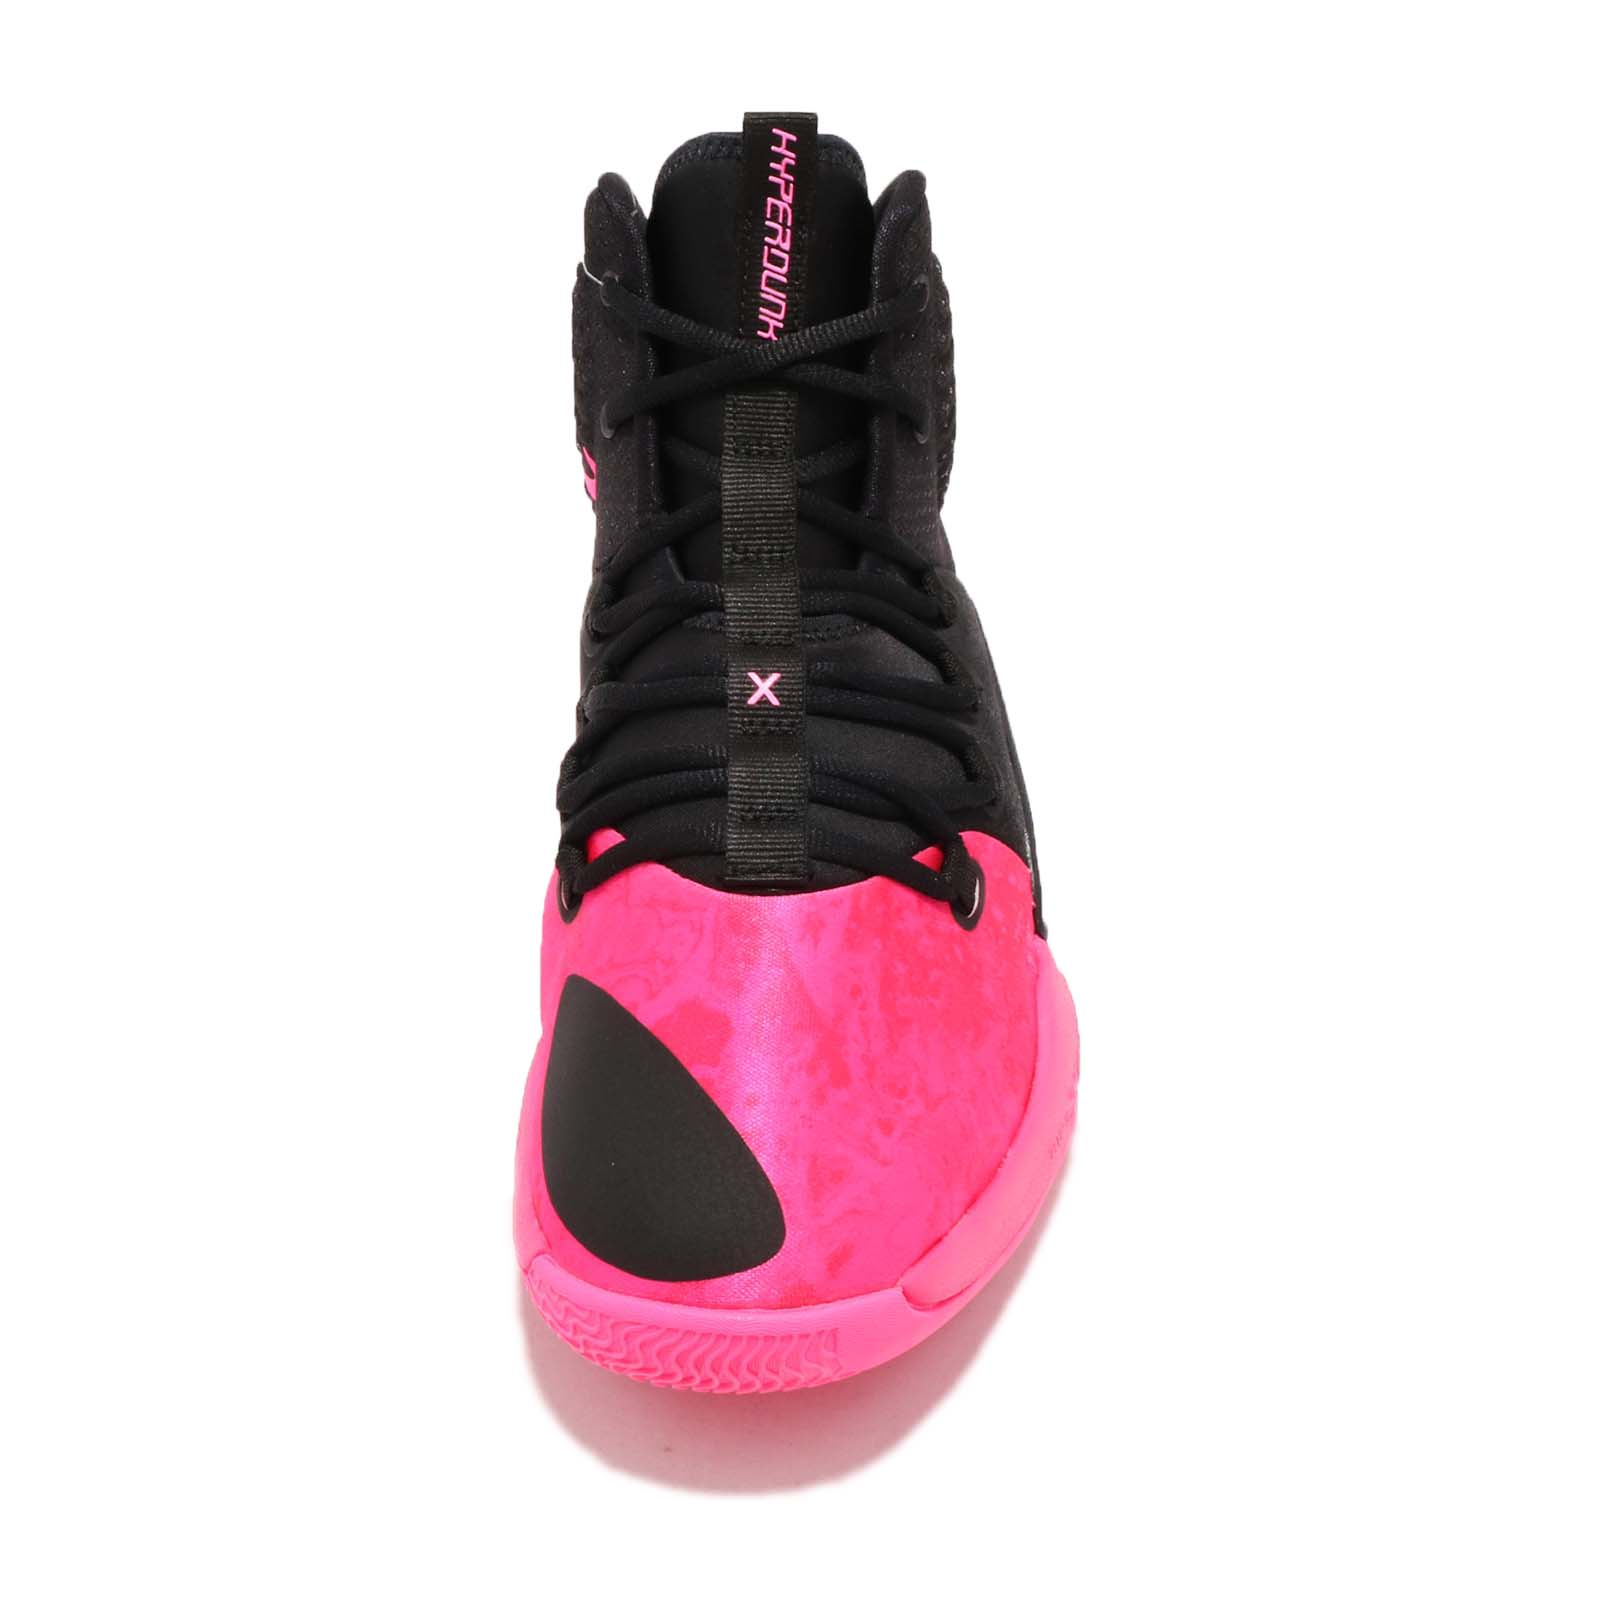 detailed look 2ed56 543a8 ... Nike Hyperdunk X Kay Yow EP 10 Black Pink Men Basketball Sho huge  discount f055c 48386 ...